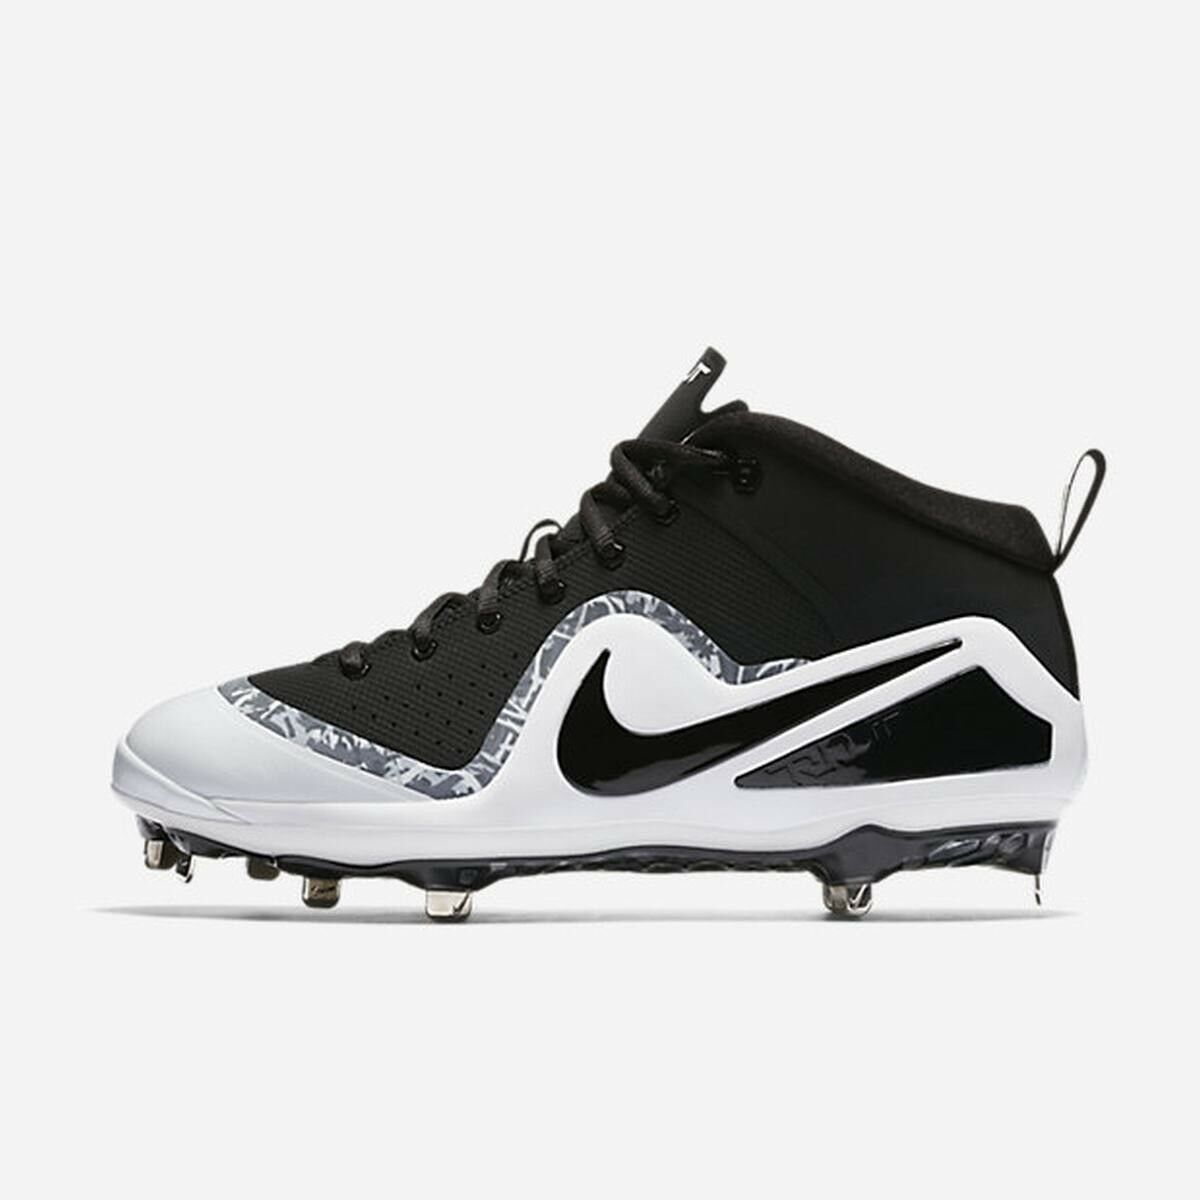 Hot Fashion Nike Force - Zoom Trout 4 917837-001,Black/White/Black/Black - Force NIB a7eea7